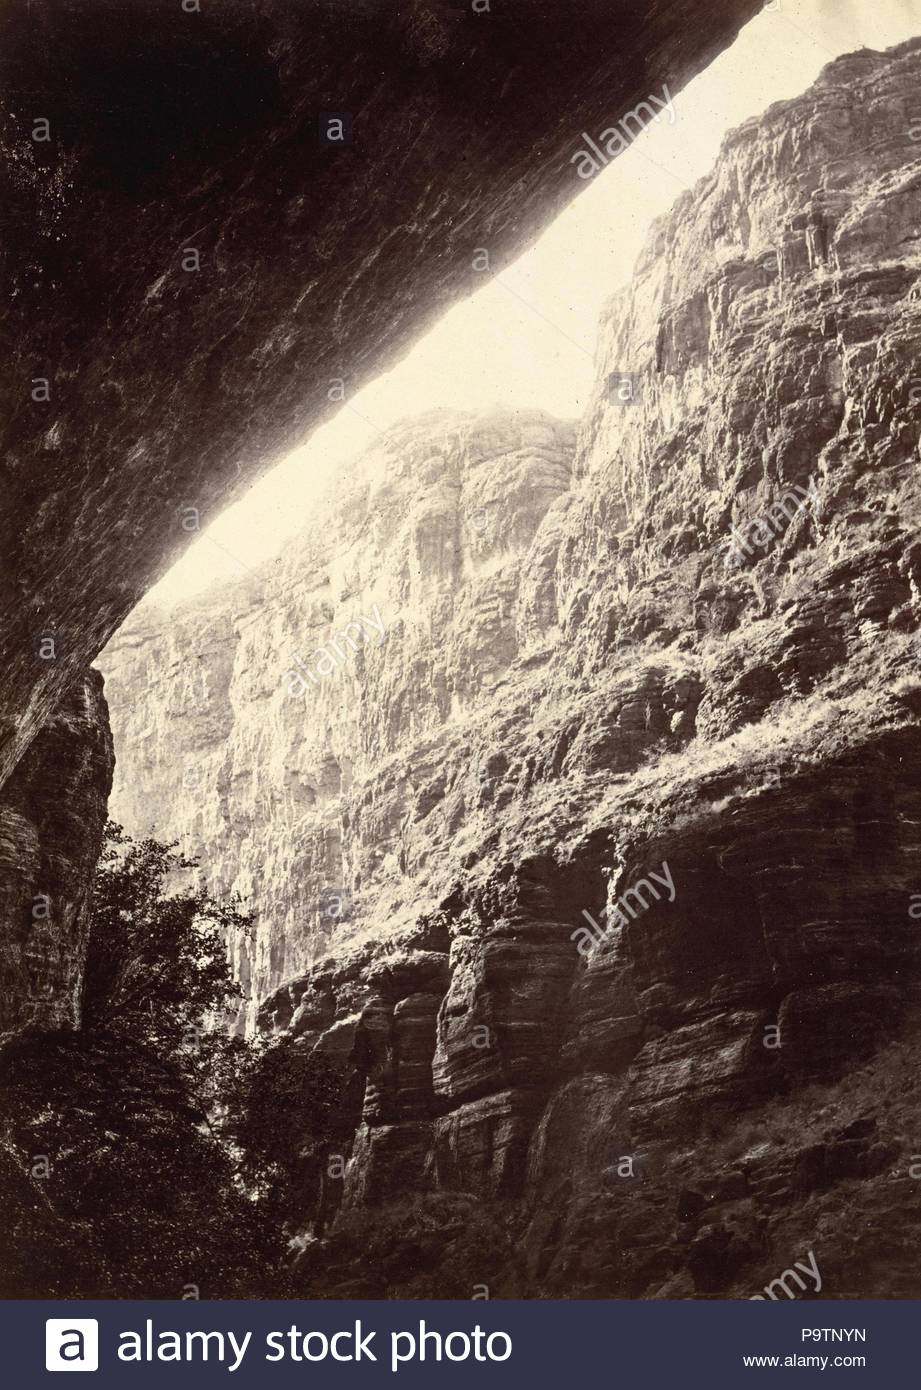 Cañon of Kanab Wash, Looking South, 1872, Albumen silver print from glass negative, Image: 28.2 x 20.2 cm (11 1/8 x 7 15/16 in.), Photographs, William Bell (American (born England) Liverpool 1831–1910 Philadelphia, Pennsylvania), By the time the government's appropriations for George Wheeler's 1872 expedition were made, Timothy O'Sullivan had already signed up with Clarence King's survey for the season. Wheeler therefore asked William H. - Stock Image